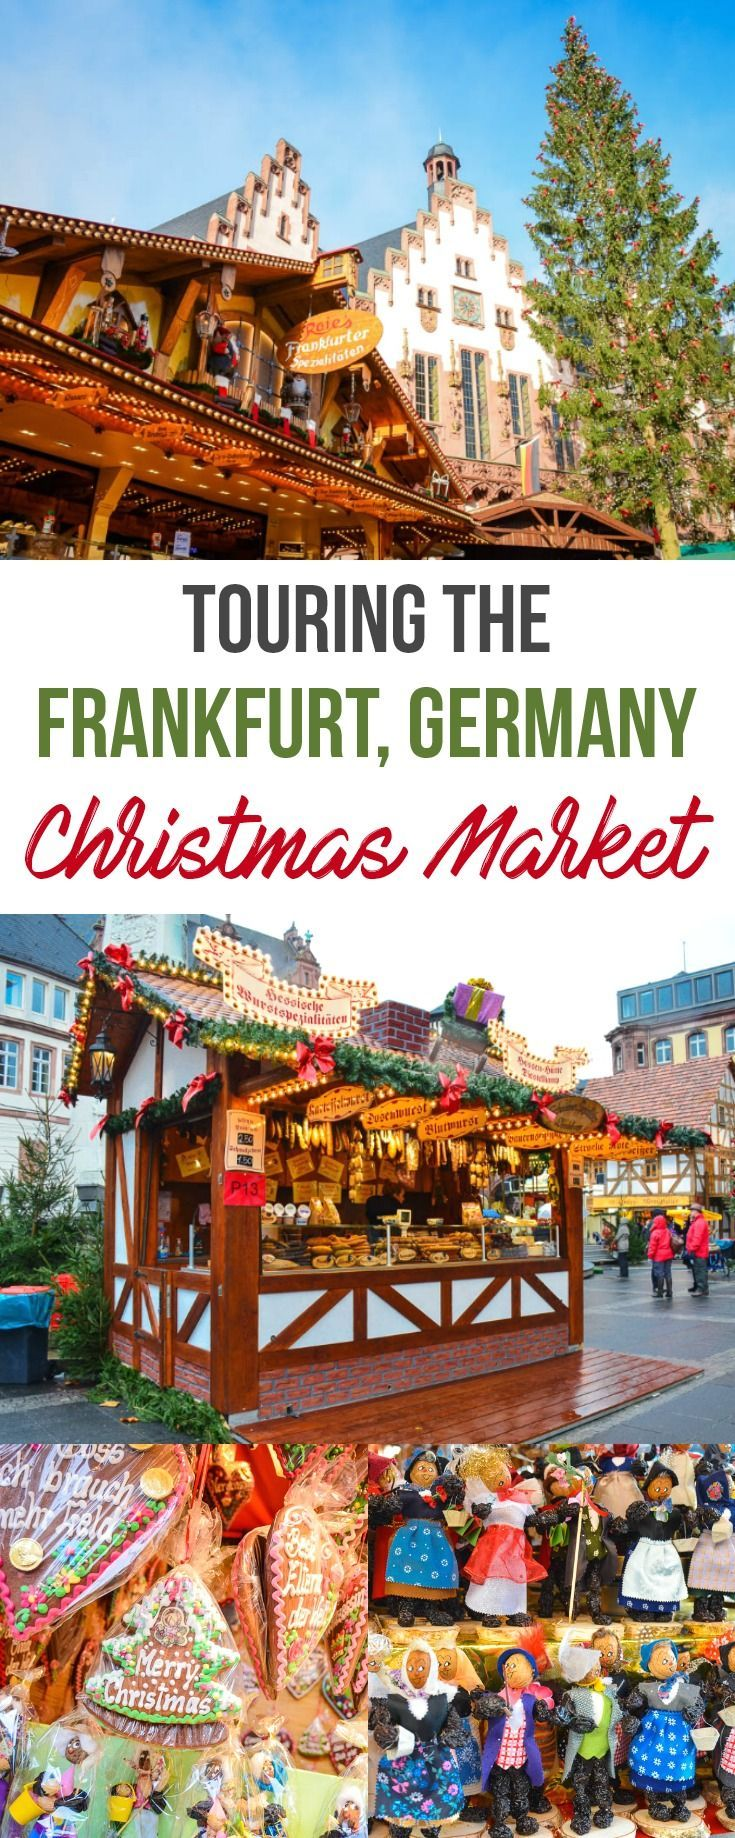 Touring the Frankfurt Christmas Market in Germany